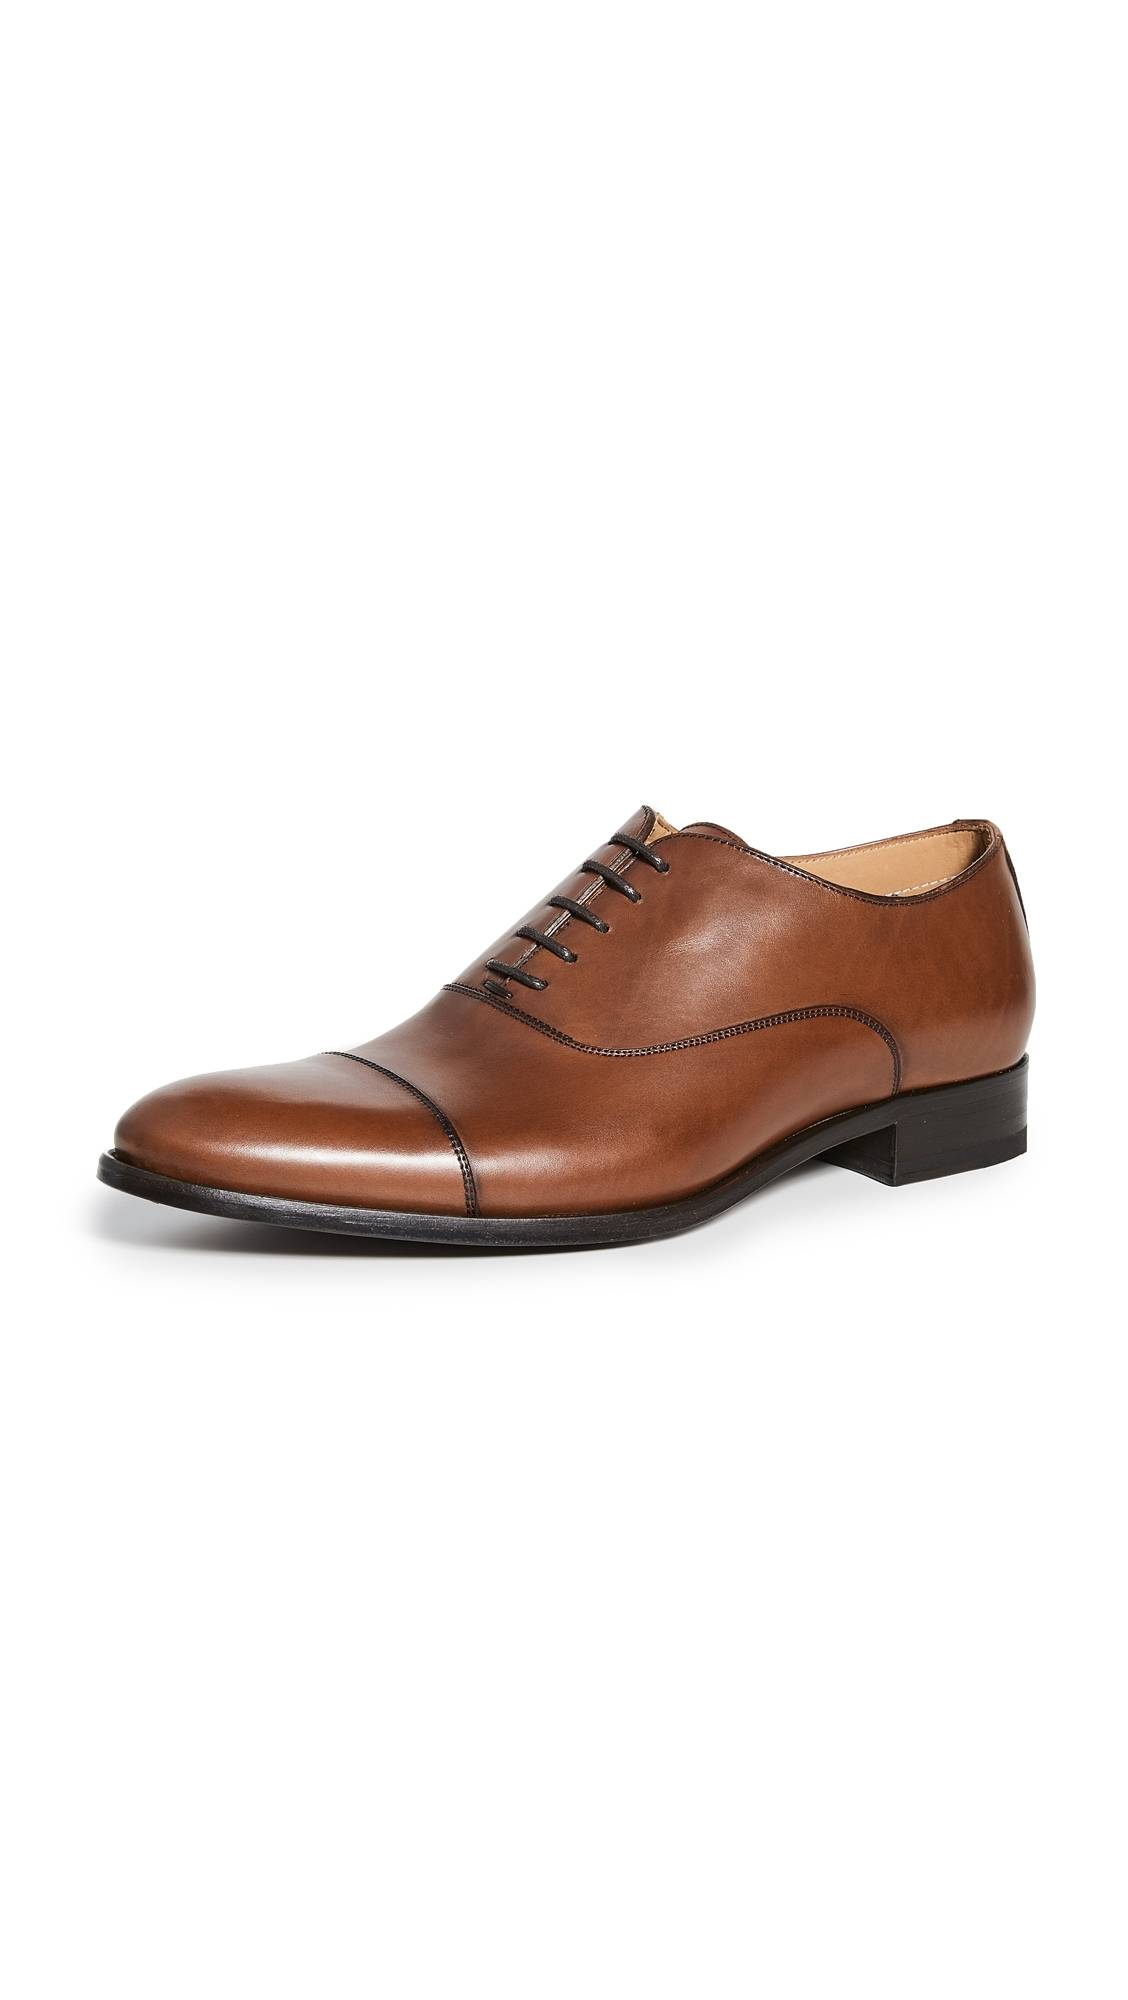 To Boot New York Forley Flex Tan Cap Toe Shoes - Butter Cuoio Luc Ant - Size: 8